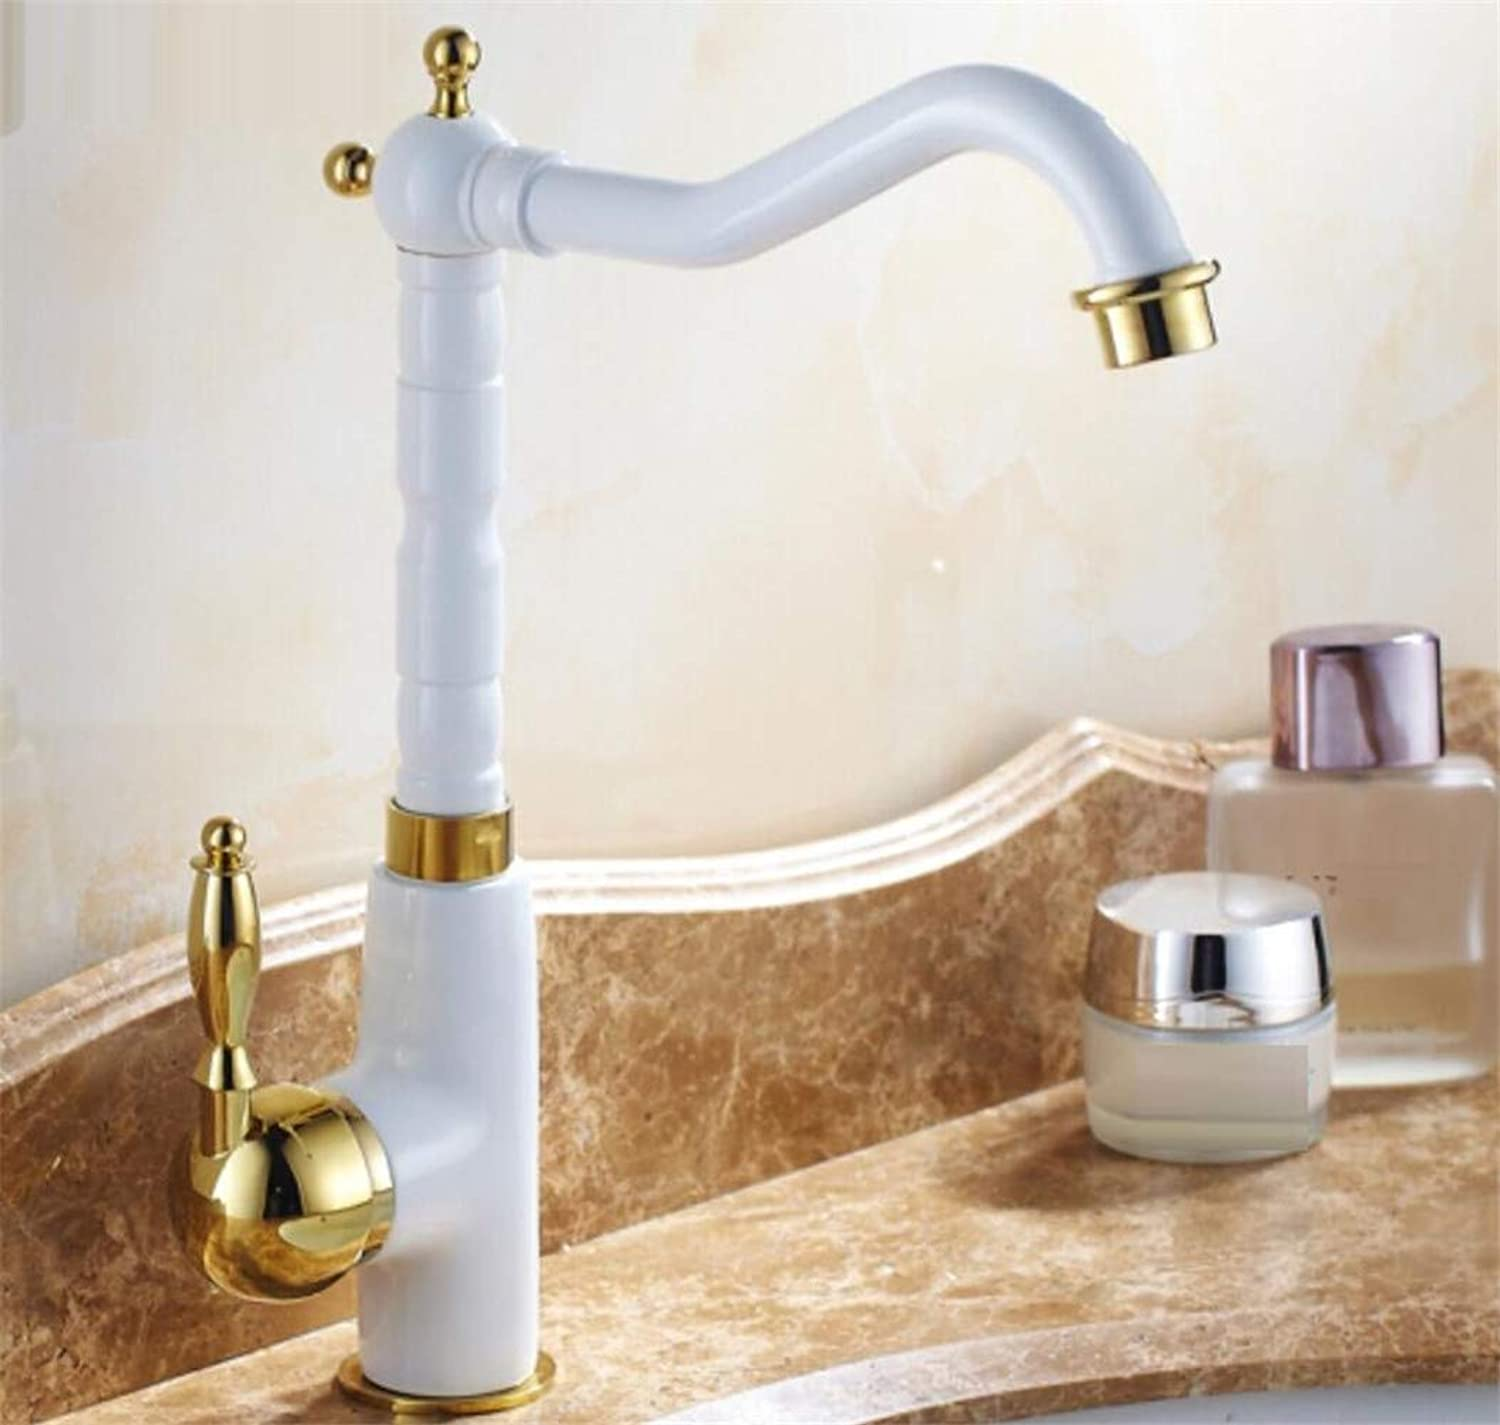 Mucert Antique European Faucet, Cold and Hot Revolving White Faucet, All Copper Pots On Tap,B